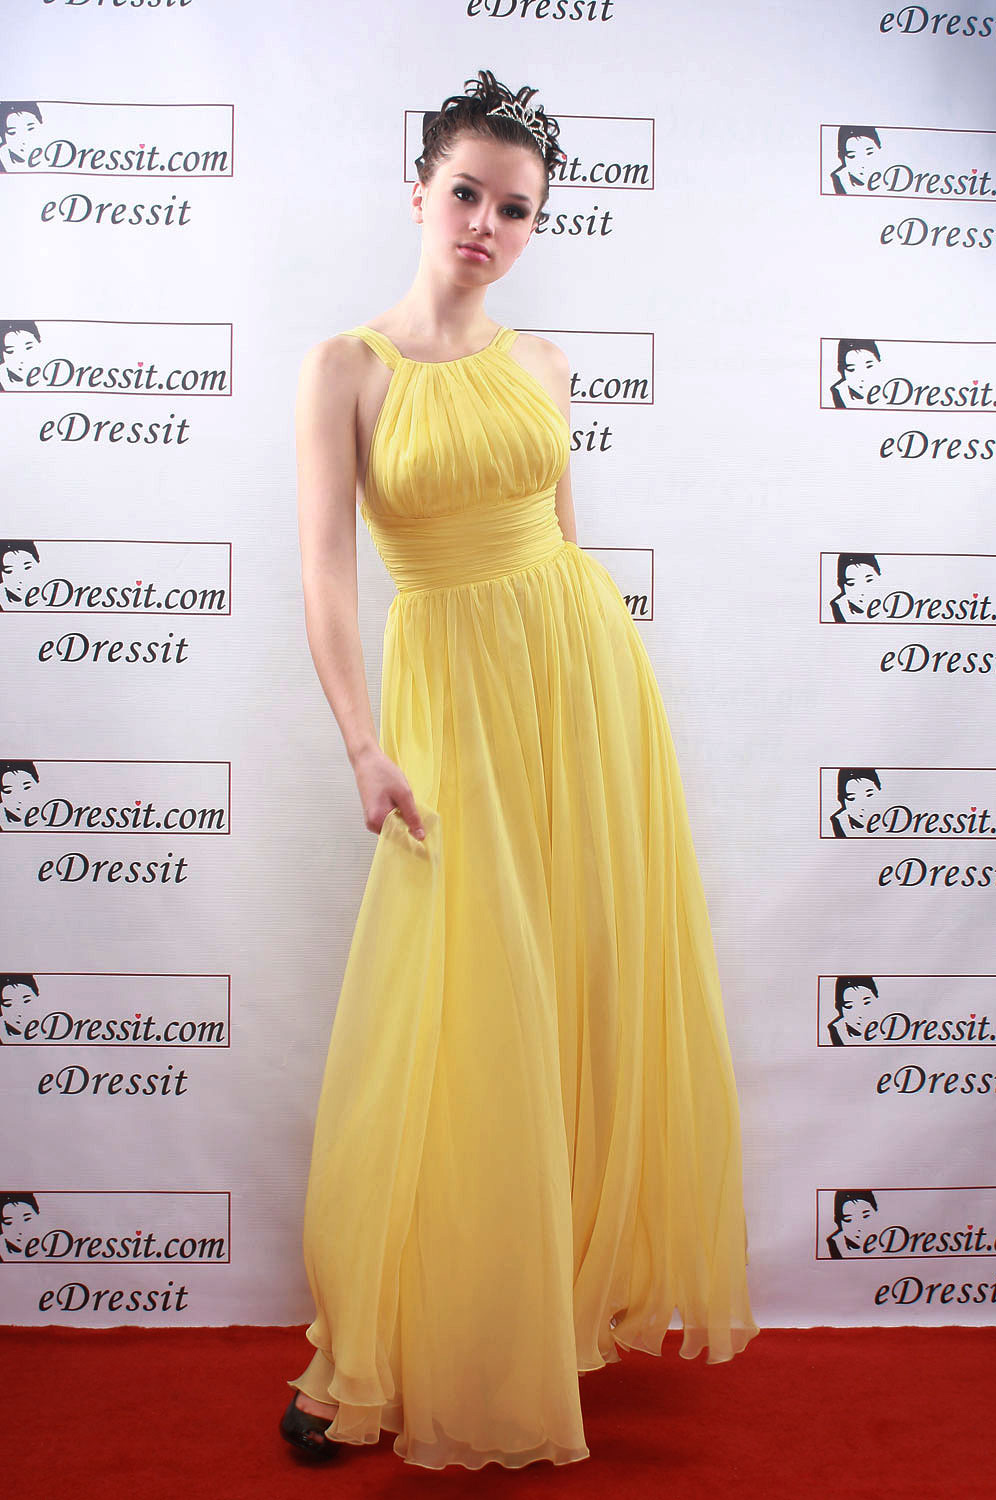 On sale !! eDressit Celebrity Sexy yellow  Prom Gown Evening Dress (00081403g)